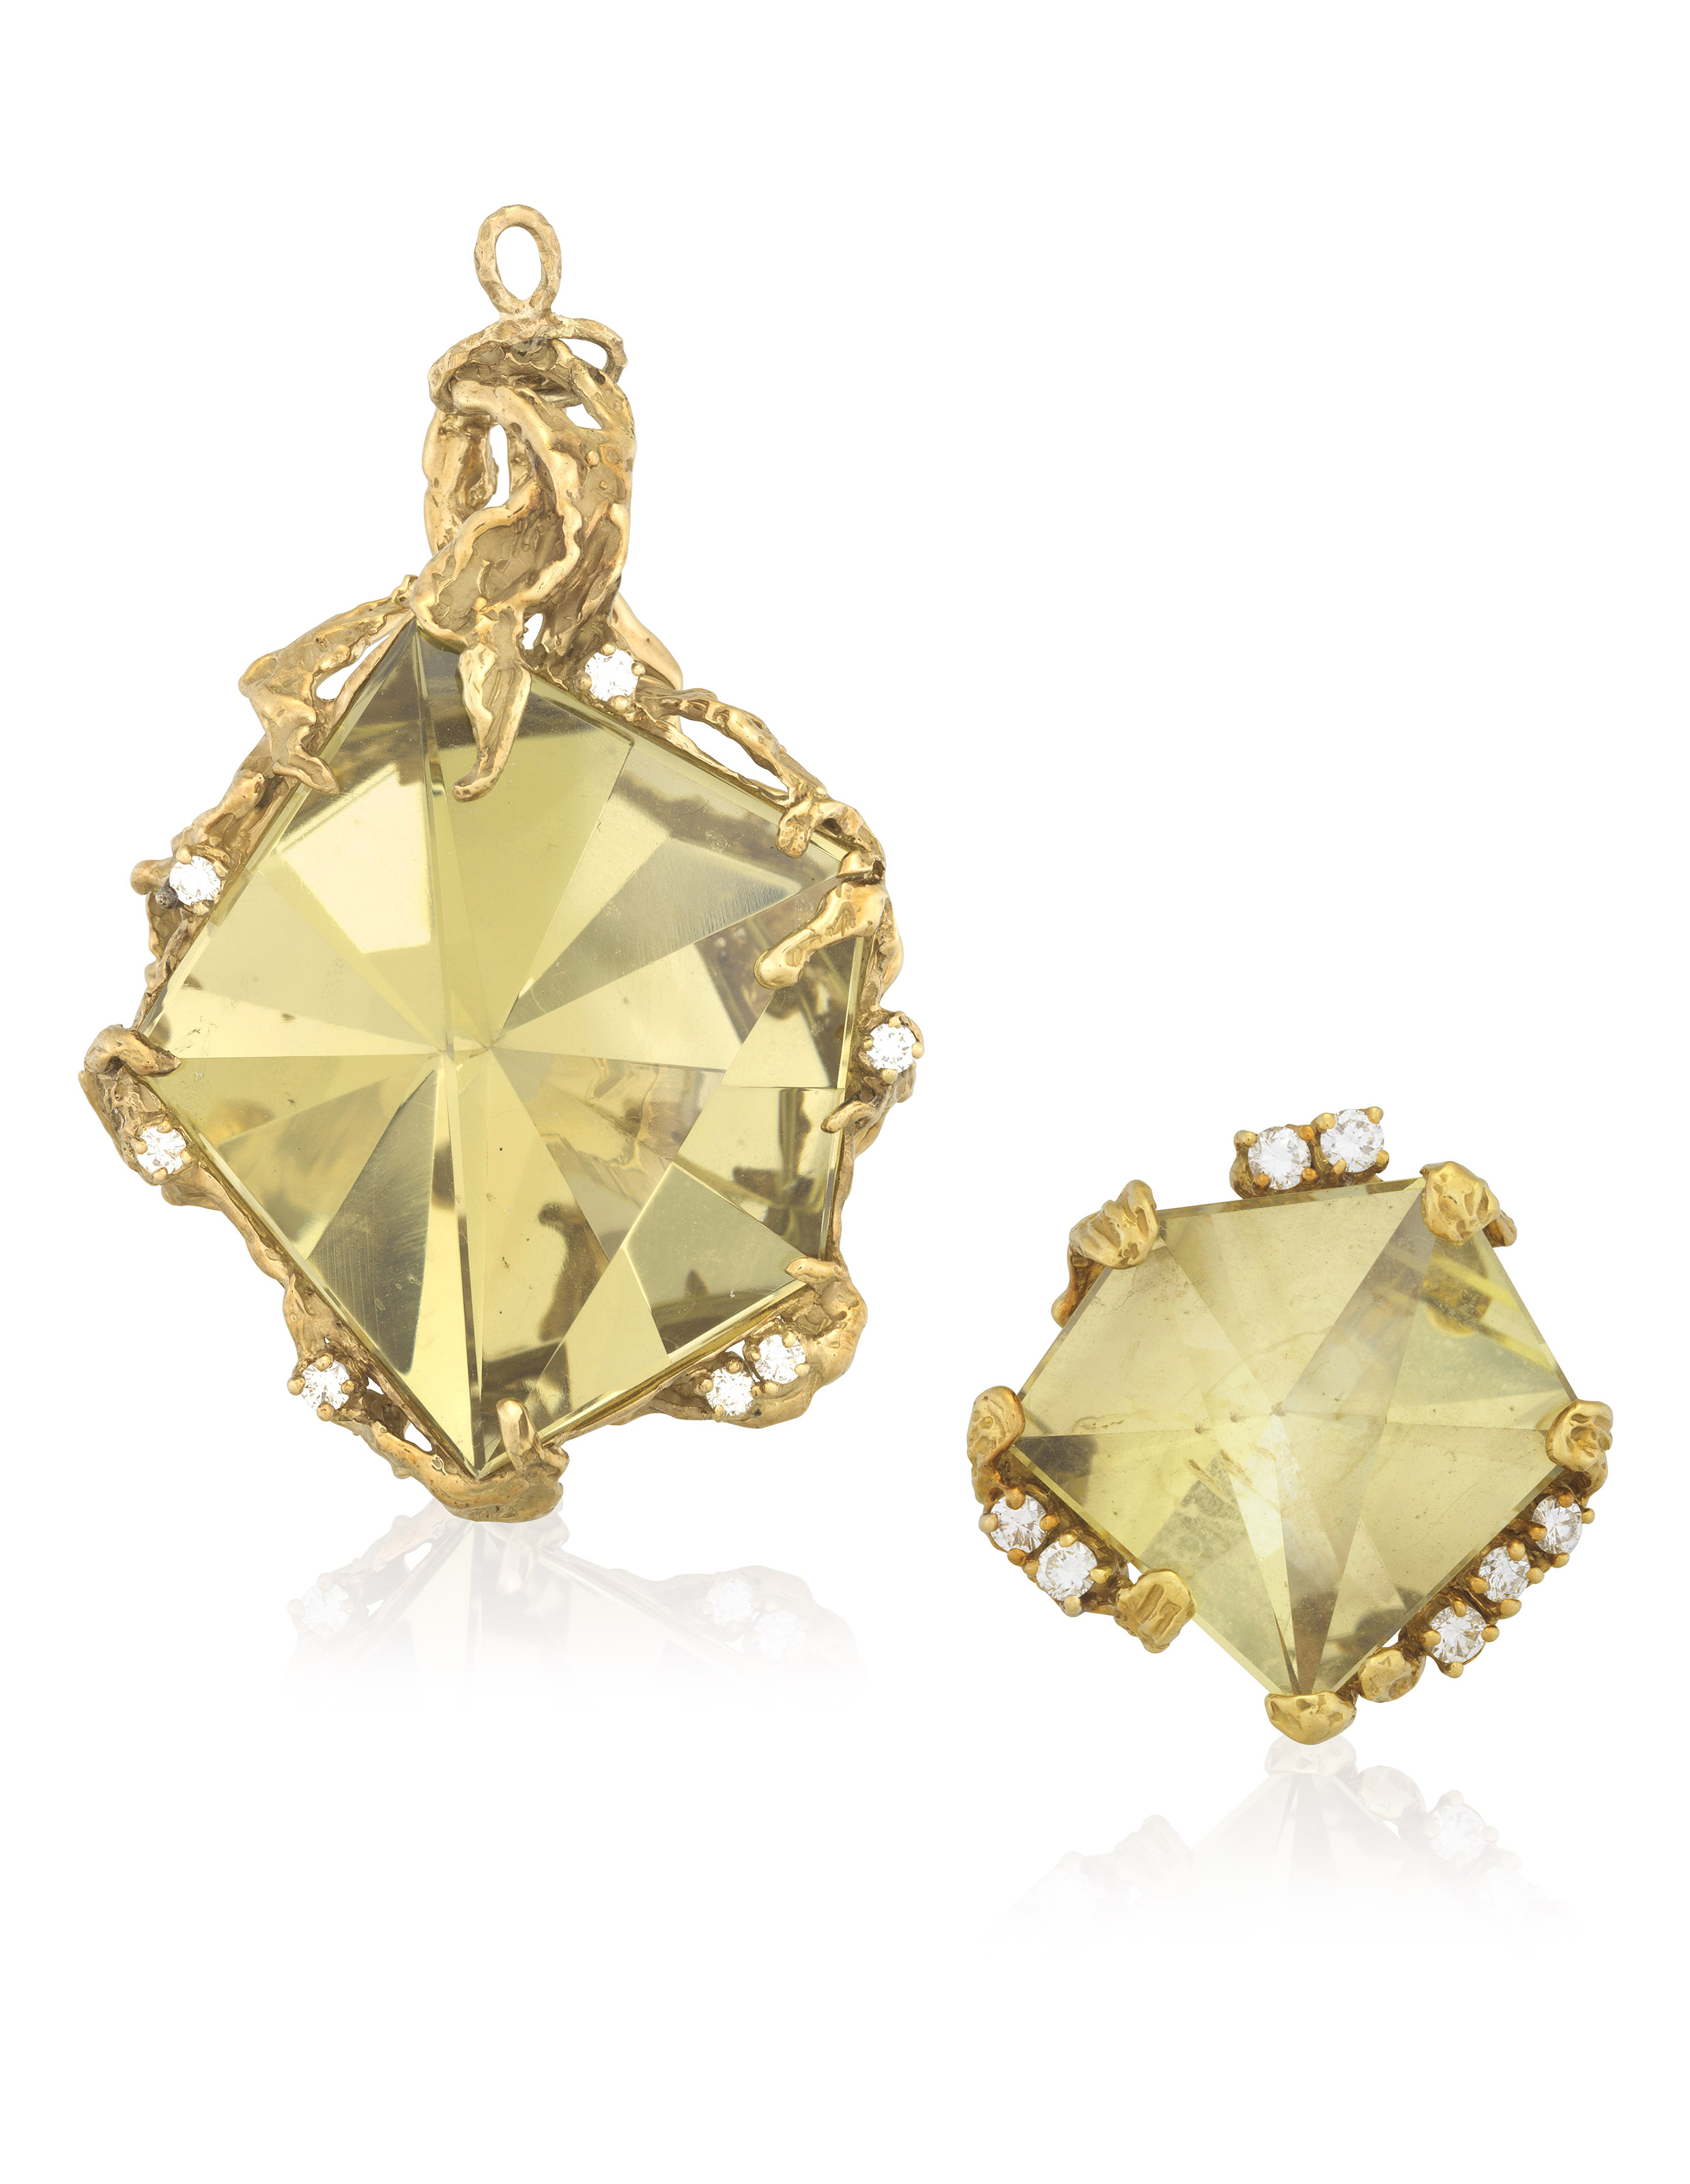 ARTHUR KING SET OF CITRINE AND